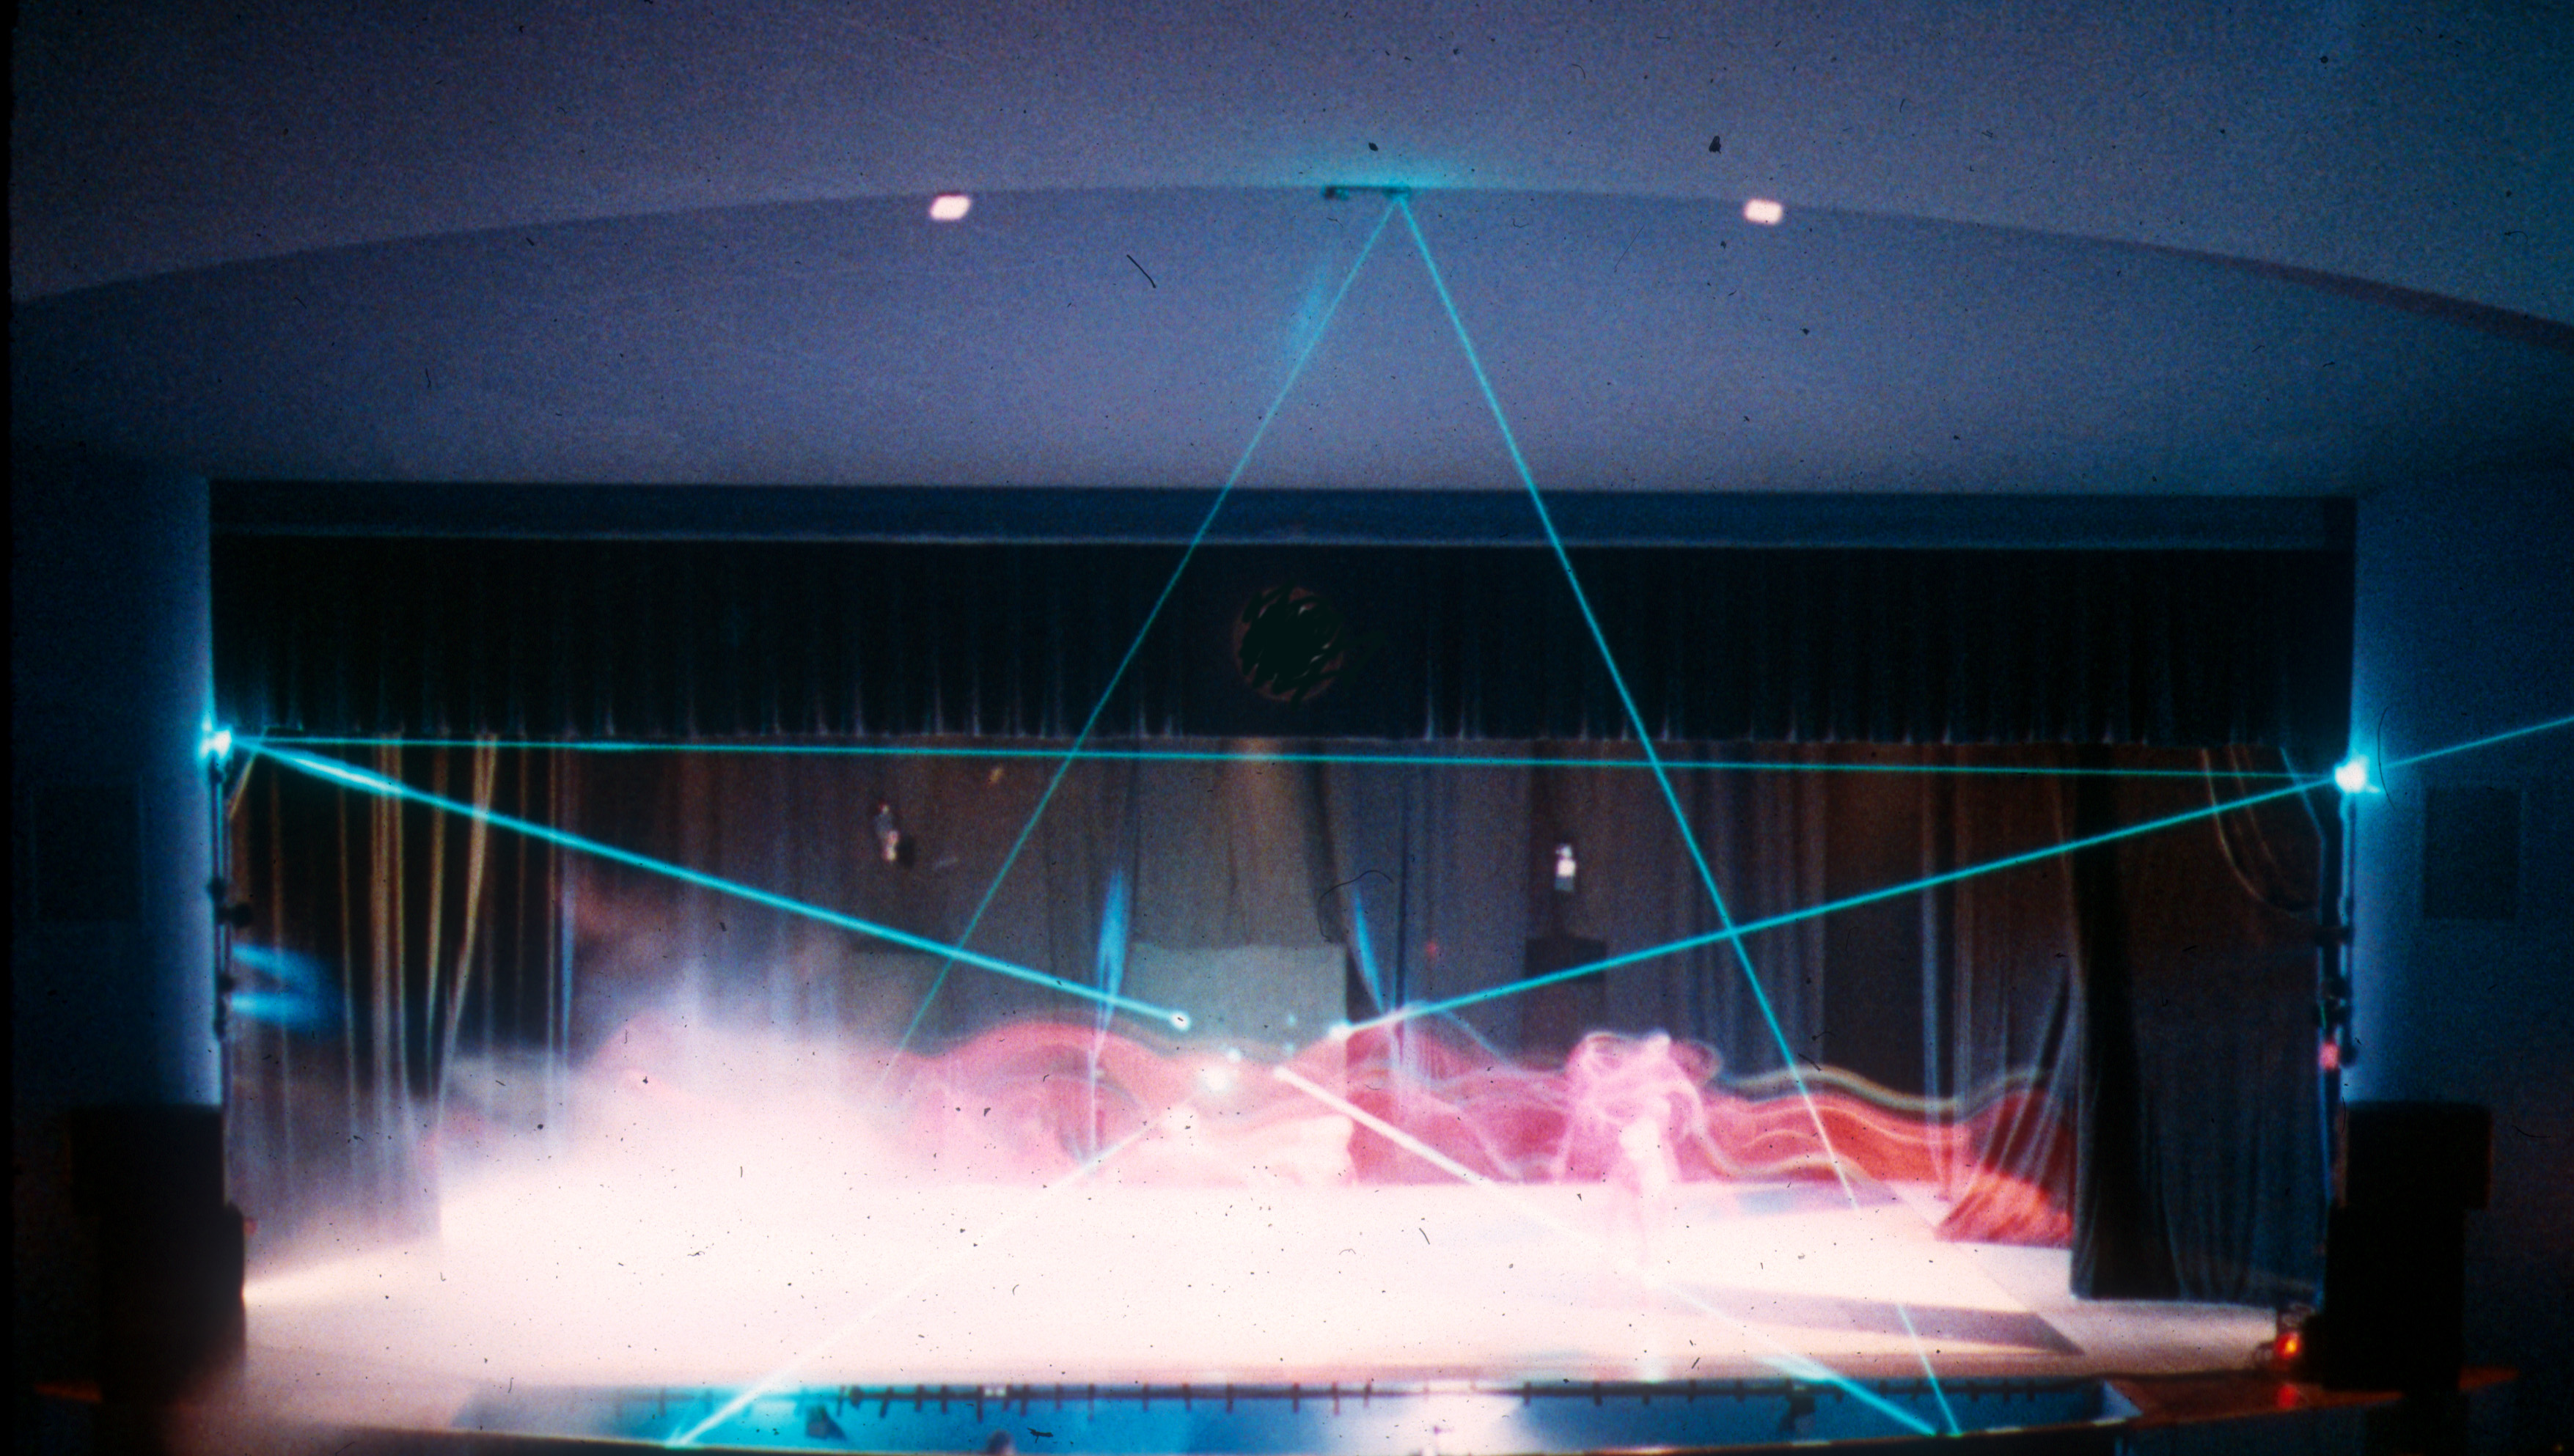 Star laser with fog